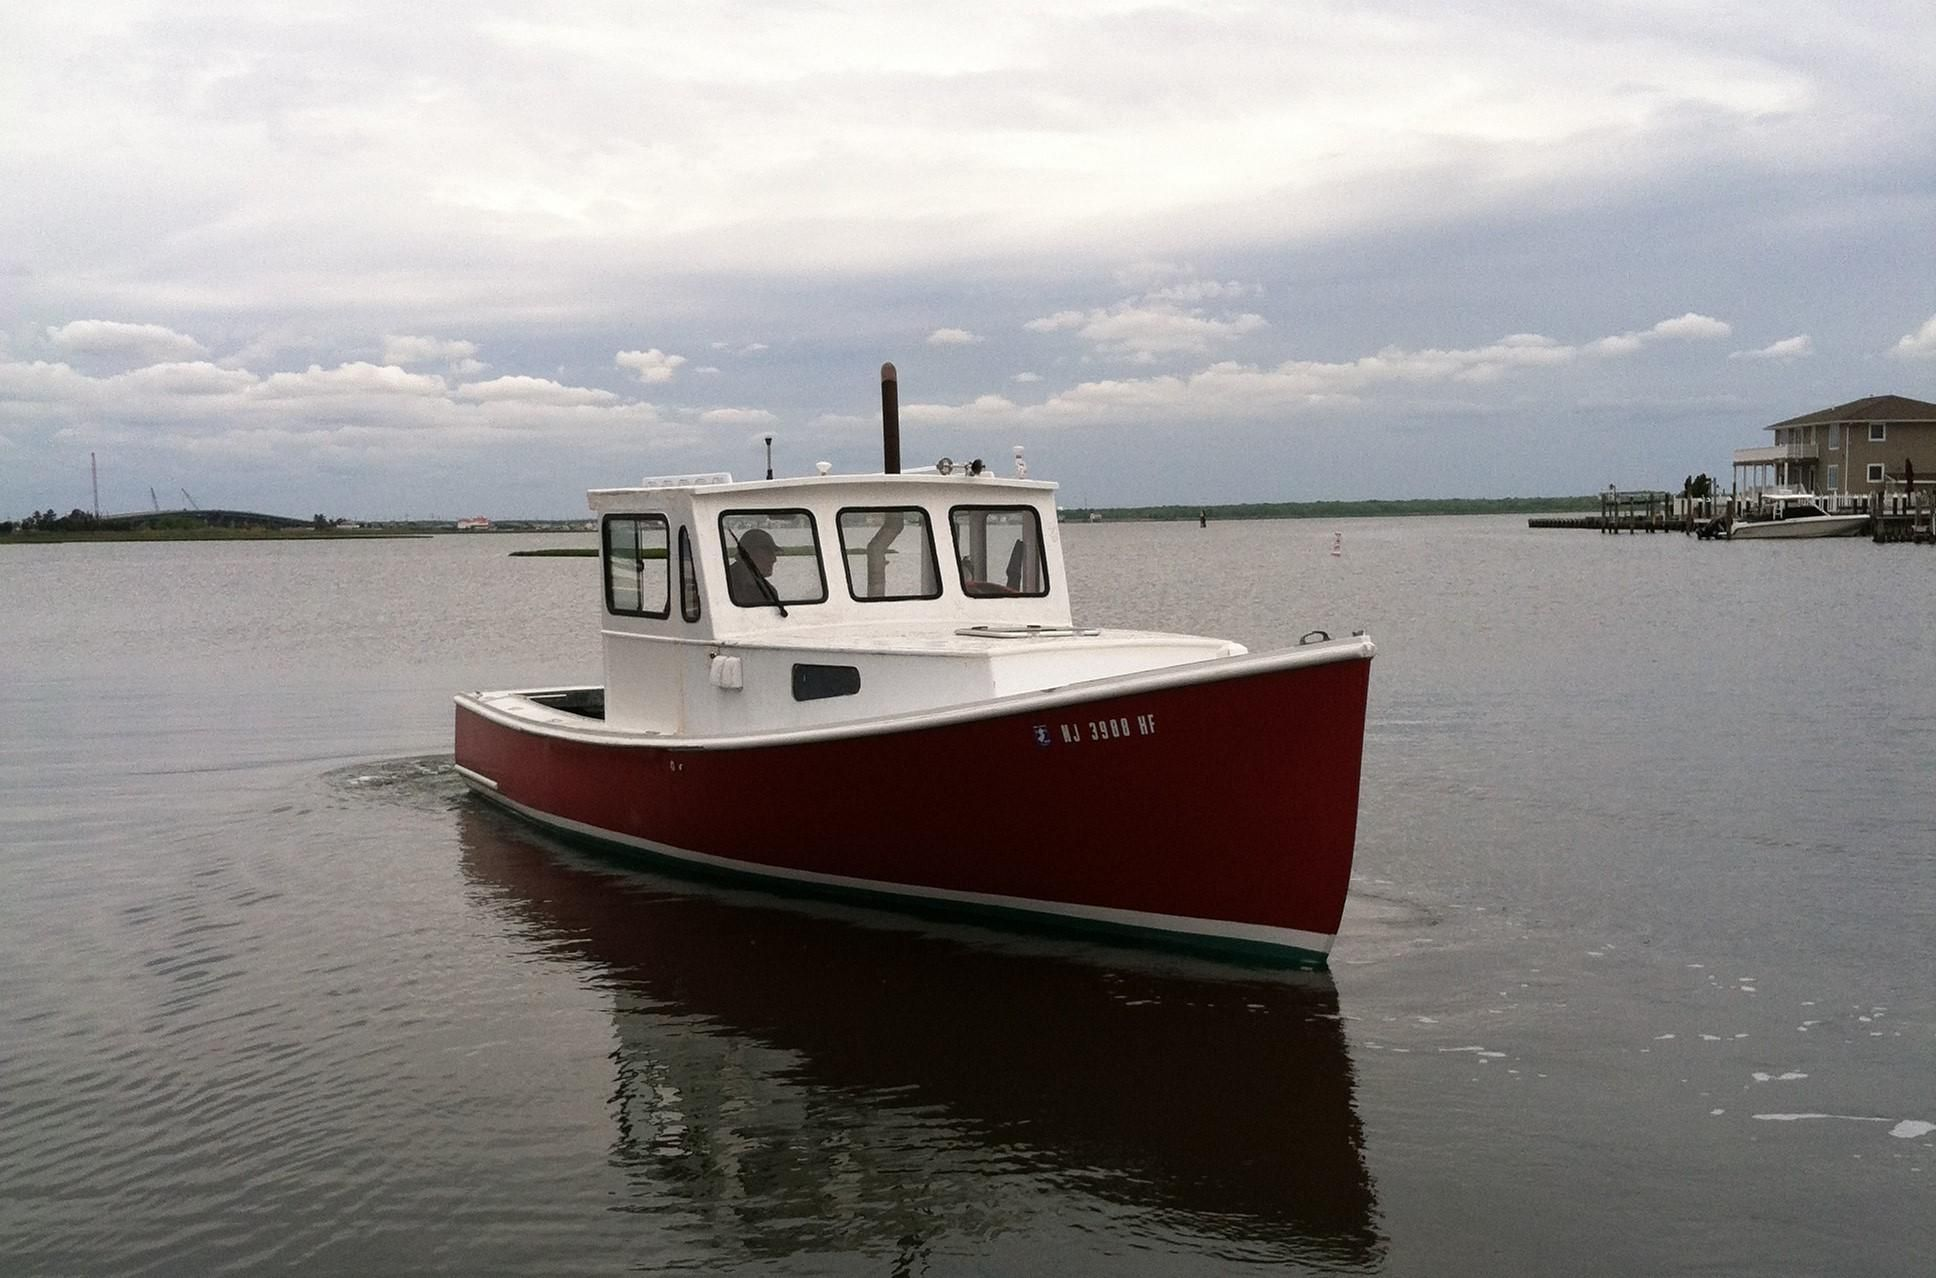 1976 Repco 30 Lobster Power Boat For Sale - www.yachtworld.com